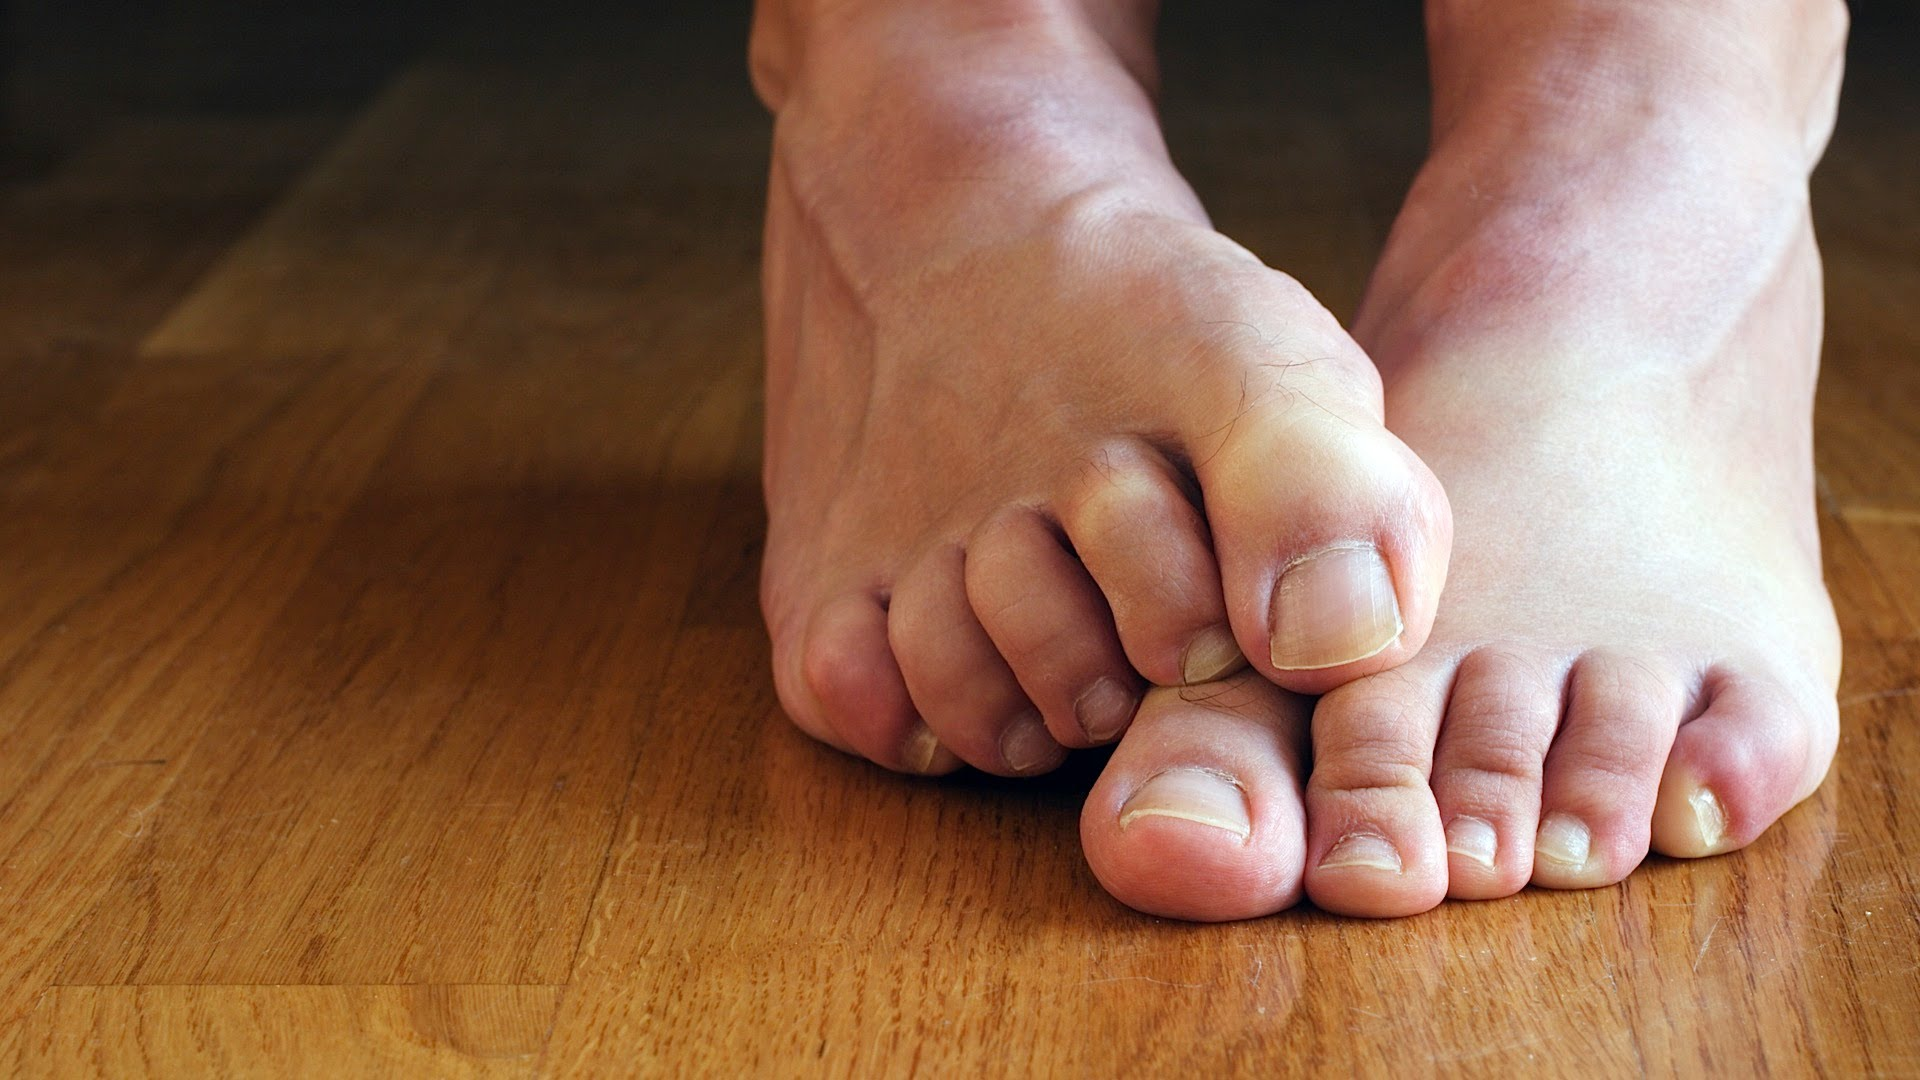 Claw Toes Could Be a Symptom of Causal Diabetes or Neurological Problem: Doctors